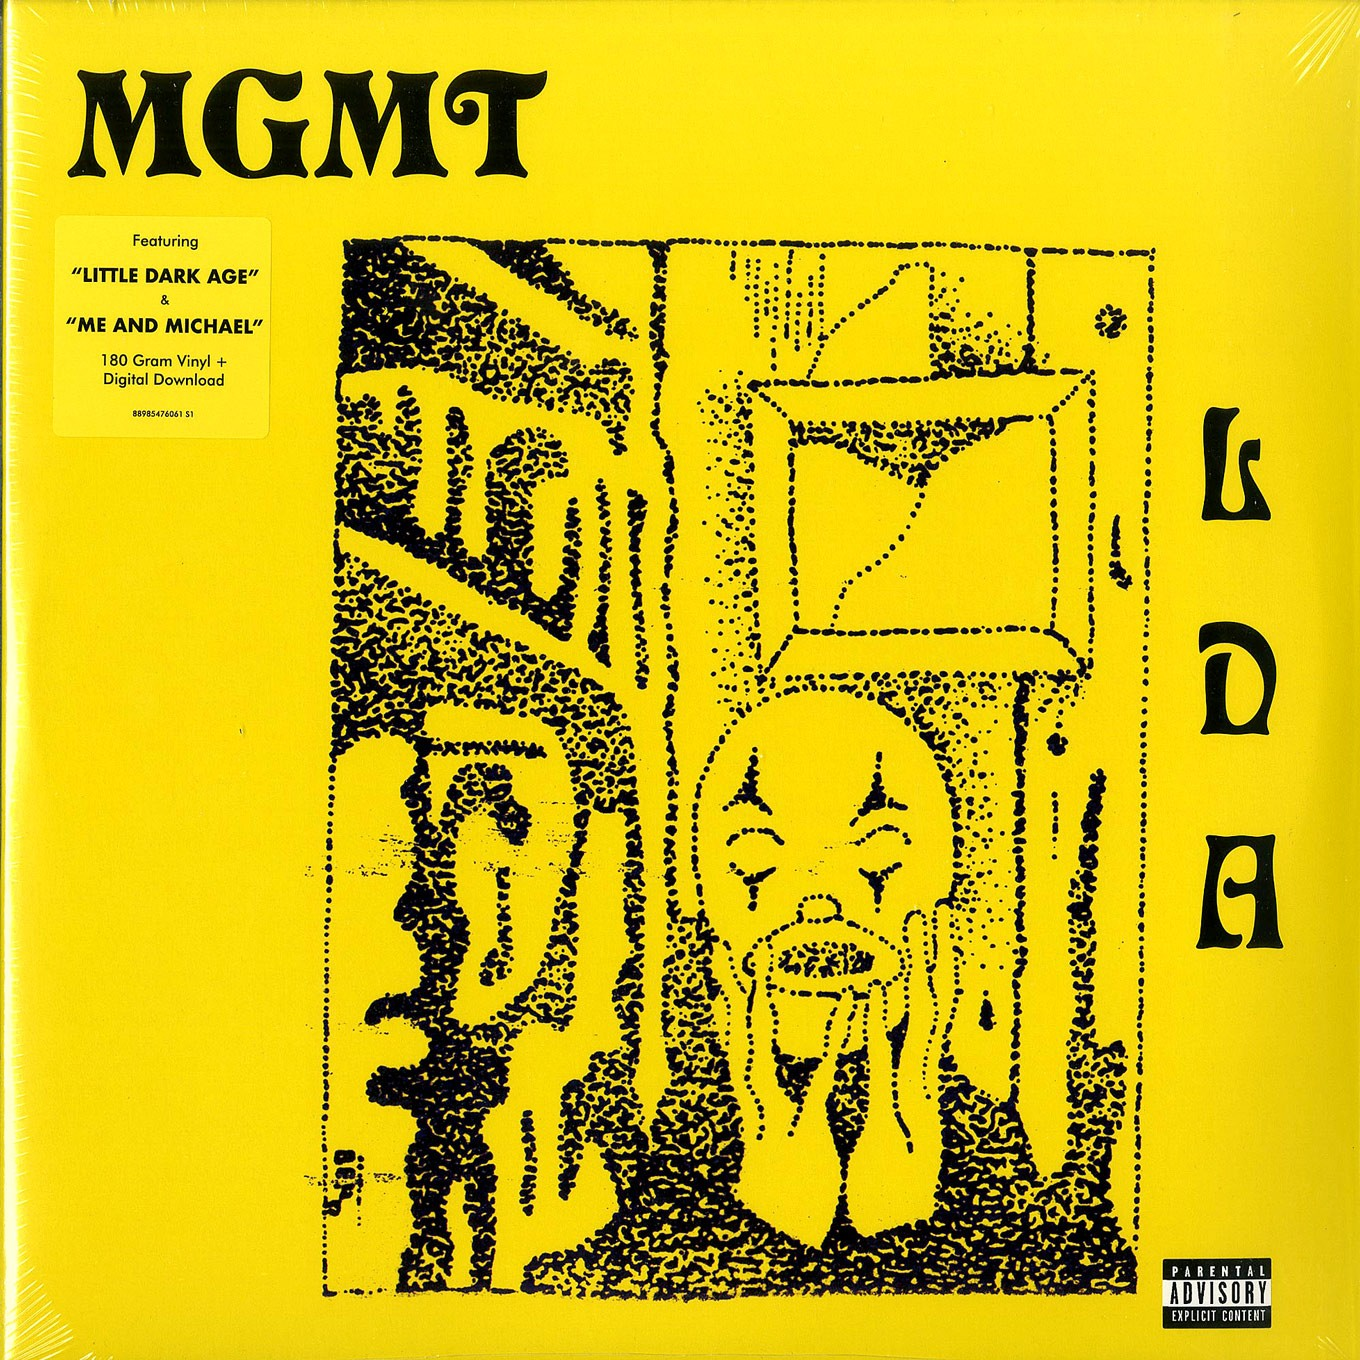 Album review: 'Little dark age' by MGMT